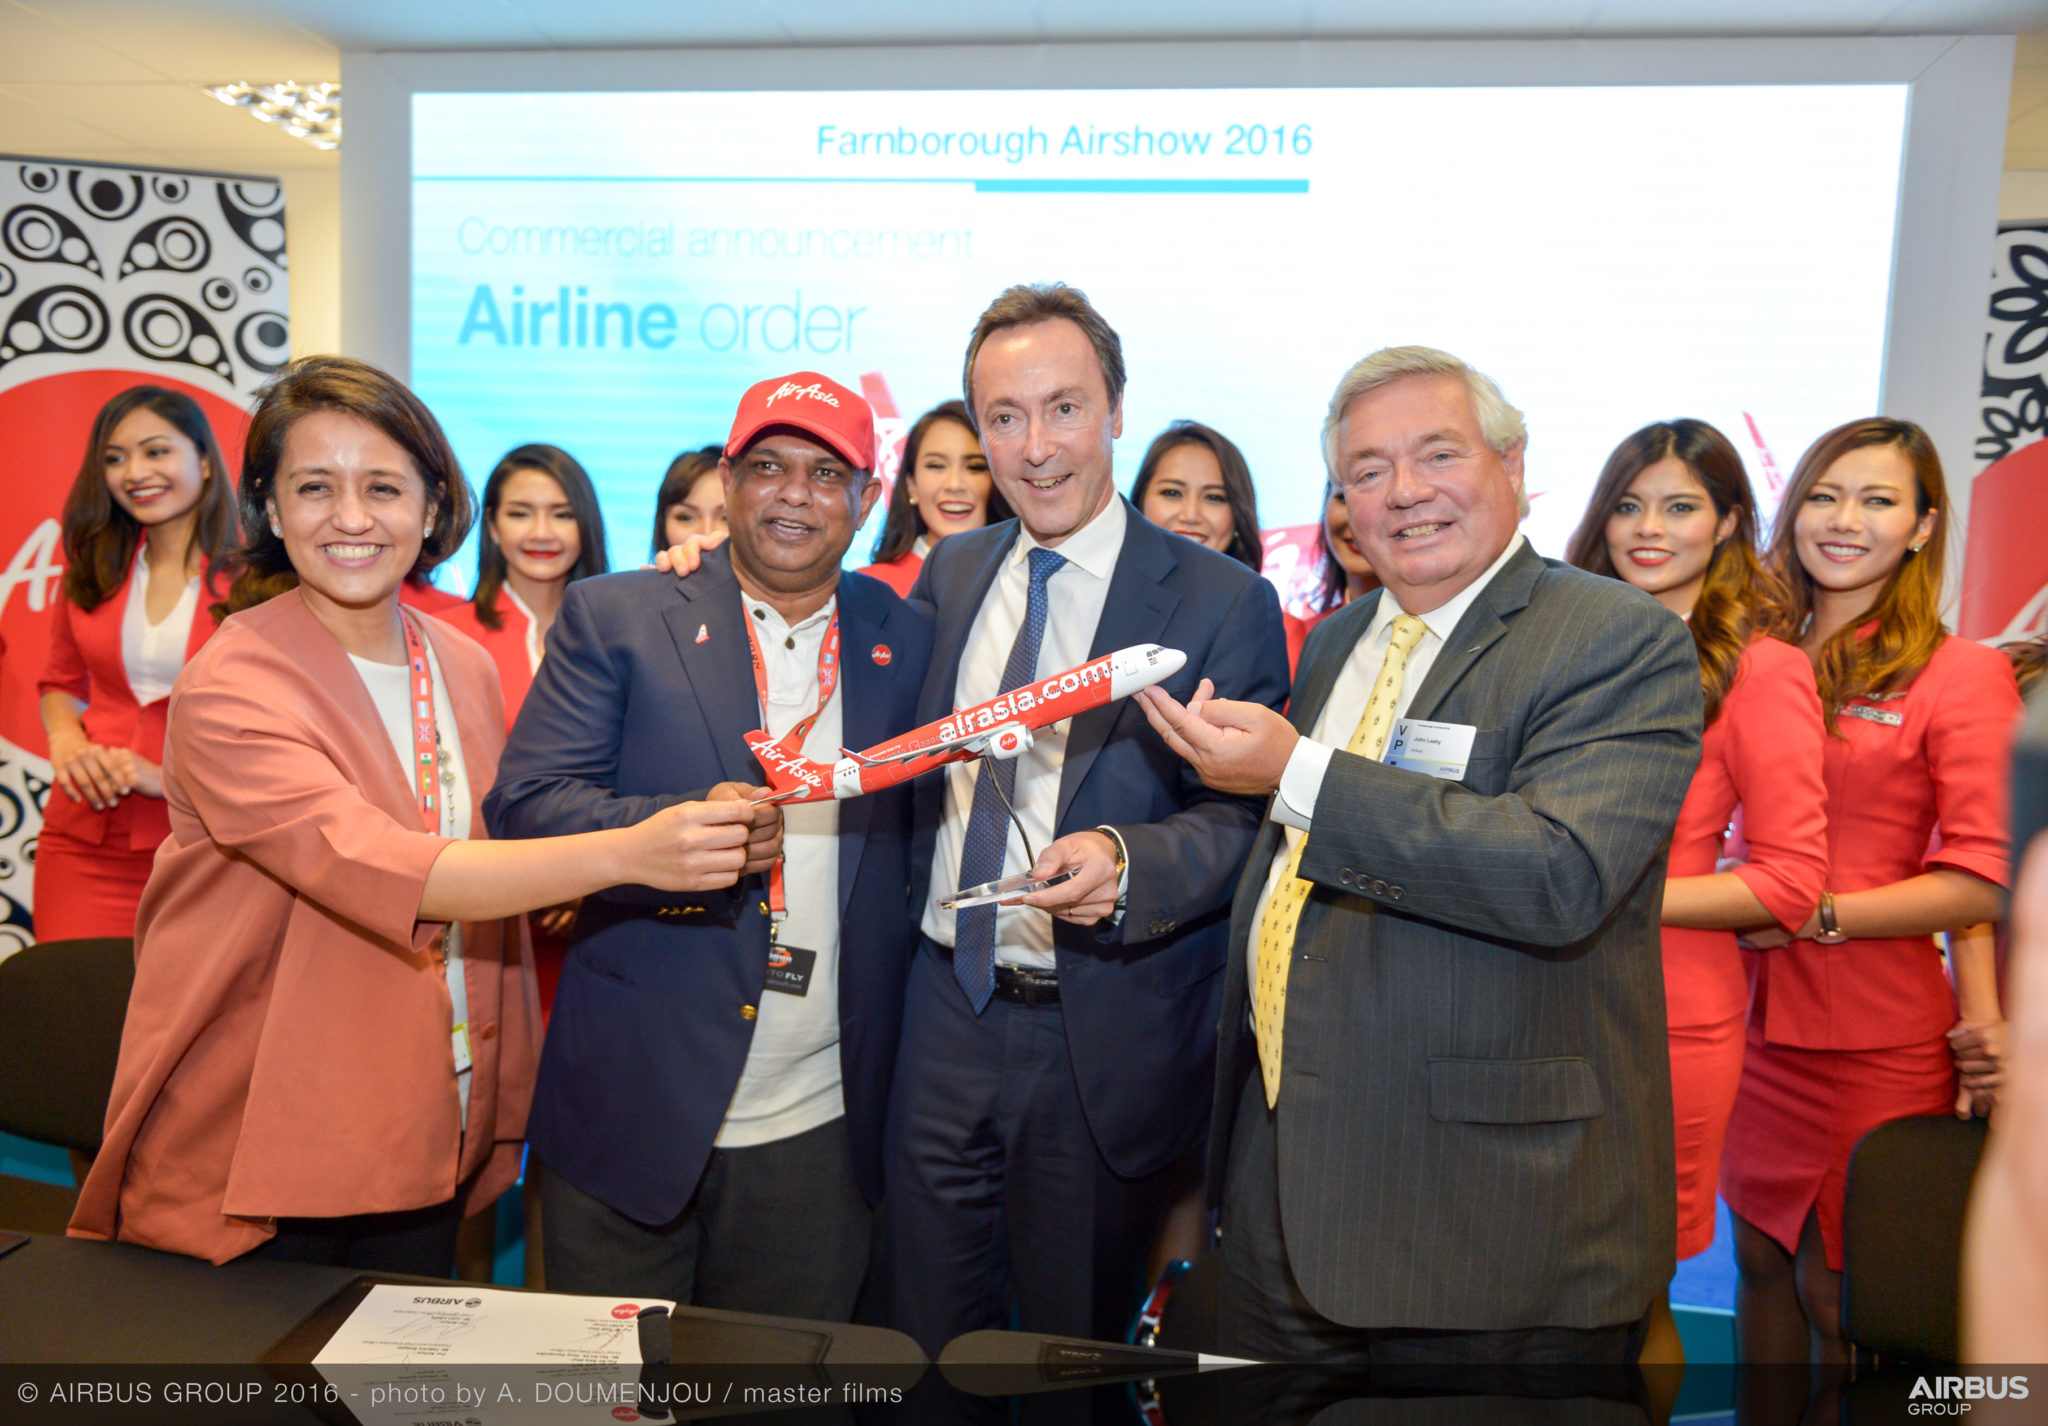 Aireen Omar and Tony Fernandes signed for 100 A321neos today in Farnborough. Image: Airbus